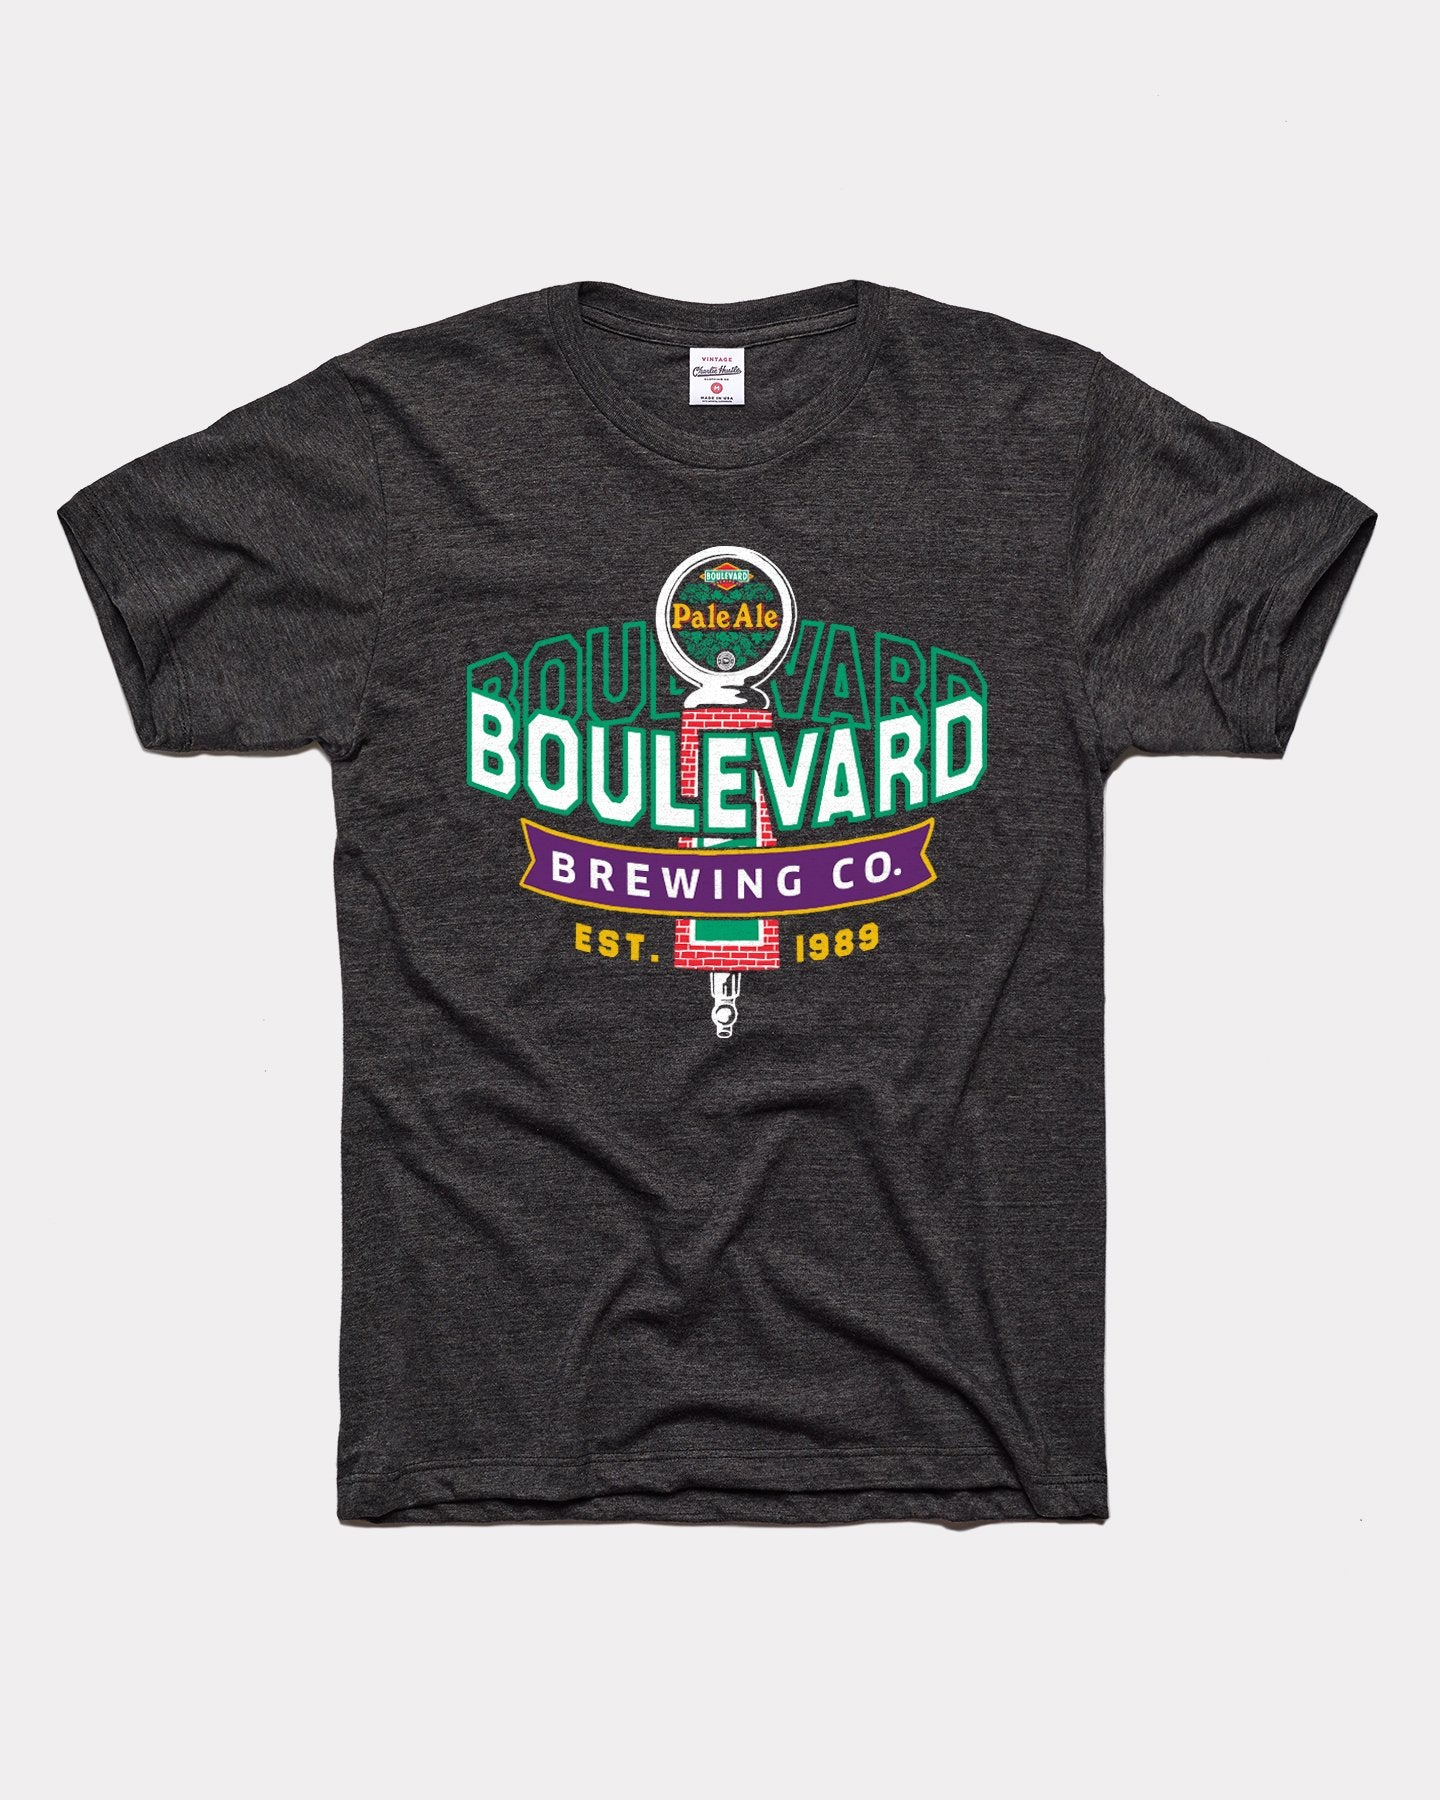 Black Boulevard Brewing Co Pale Ale Tap Handle Vintage T-Shirt